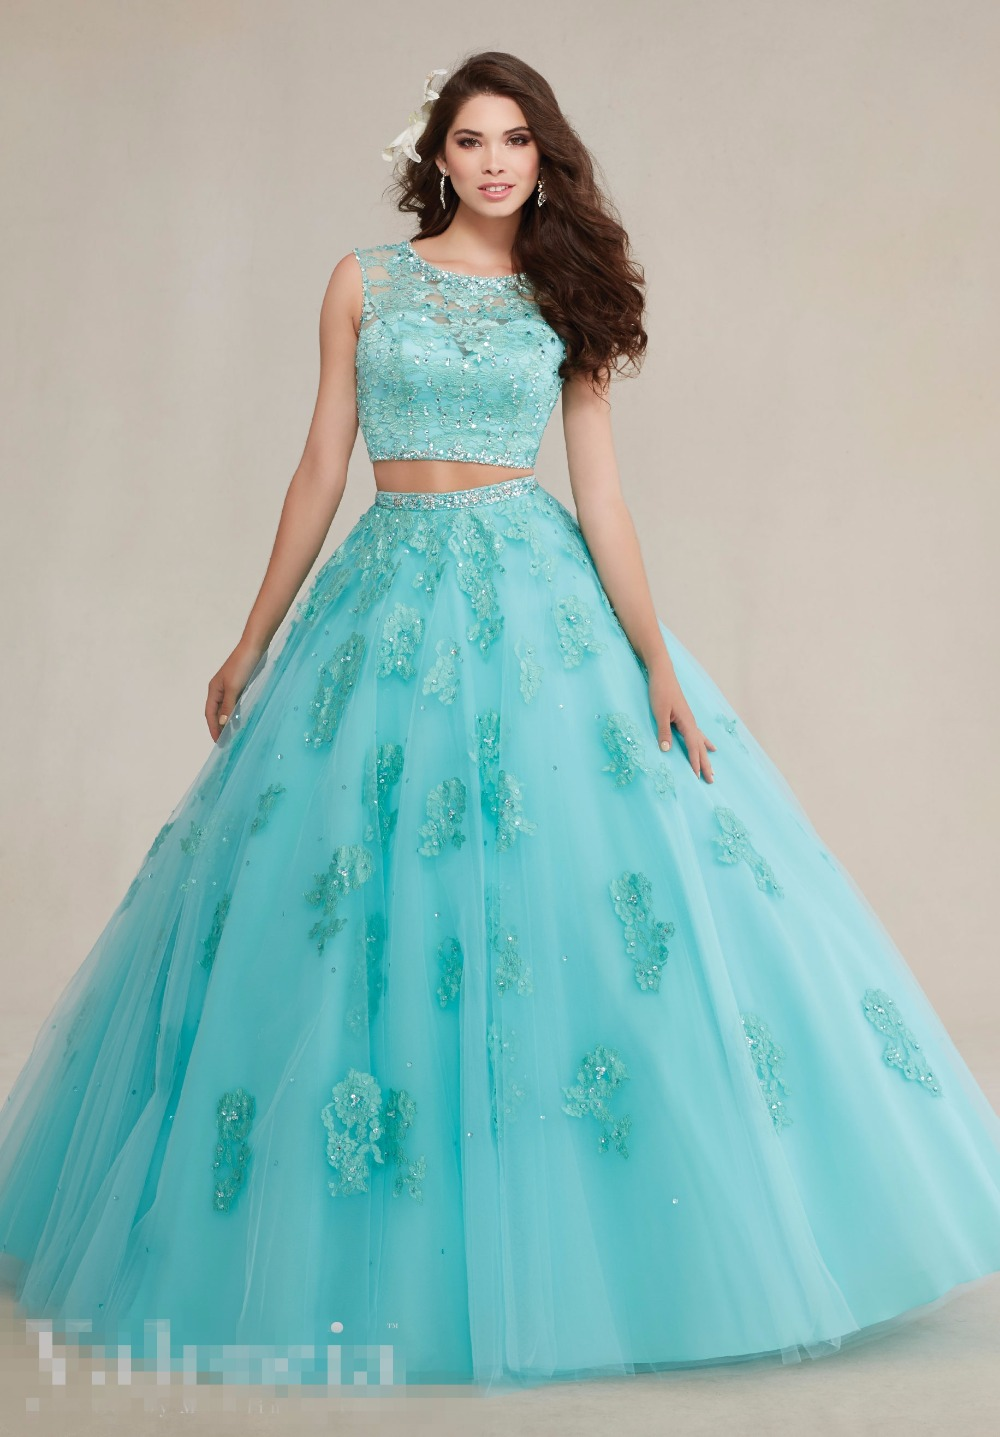 Aliexpress.com : Buy Mint Ball Gown Prom Two Pieces Quinceanera ...